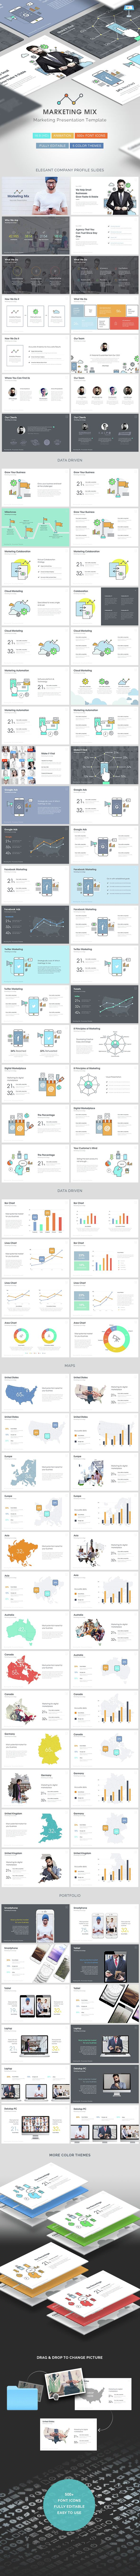 Marketing Mix - Creative Keynote Template. Download here: http://graphicriver.net/item/marketing-mix-creative-keynote-template/15159292?ref=ksioks